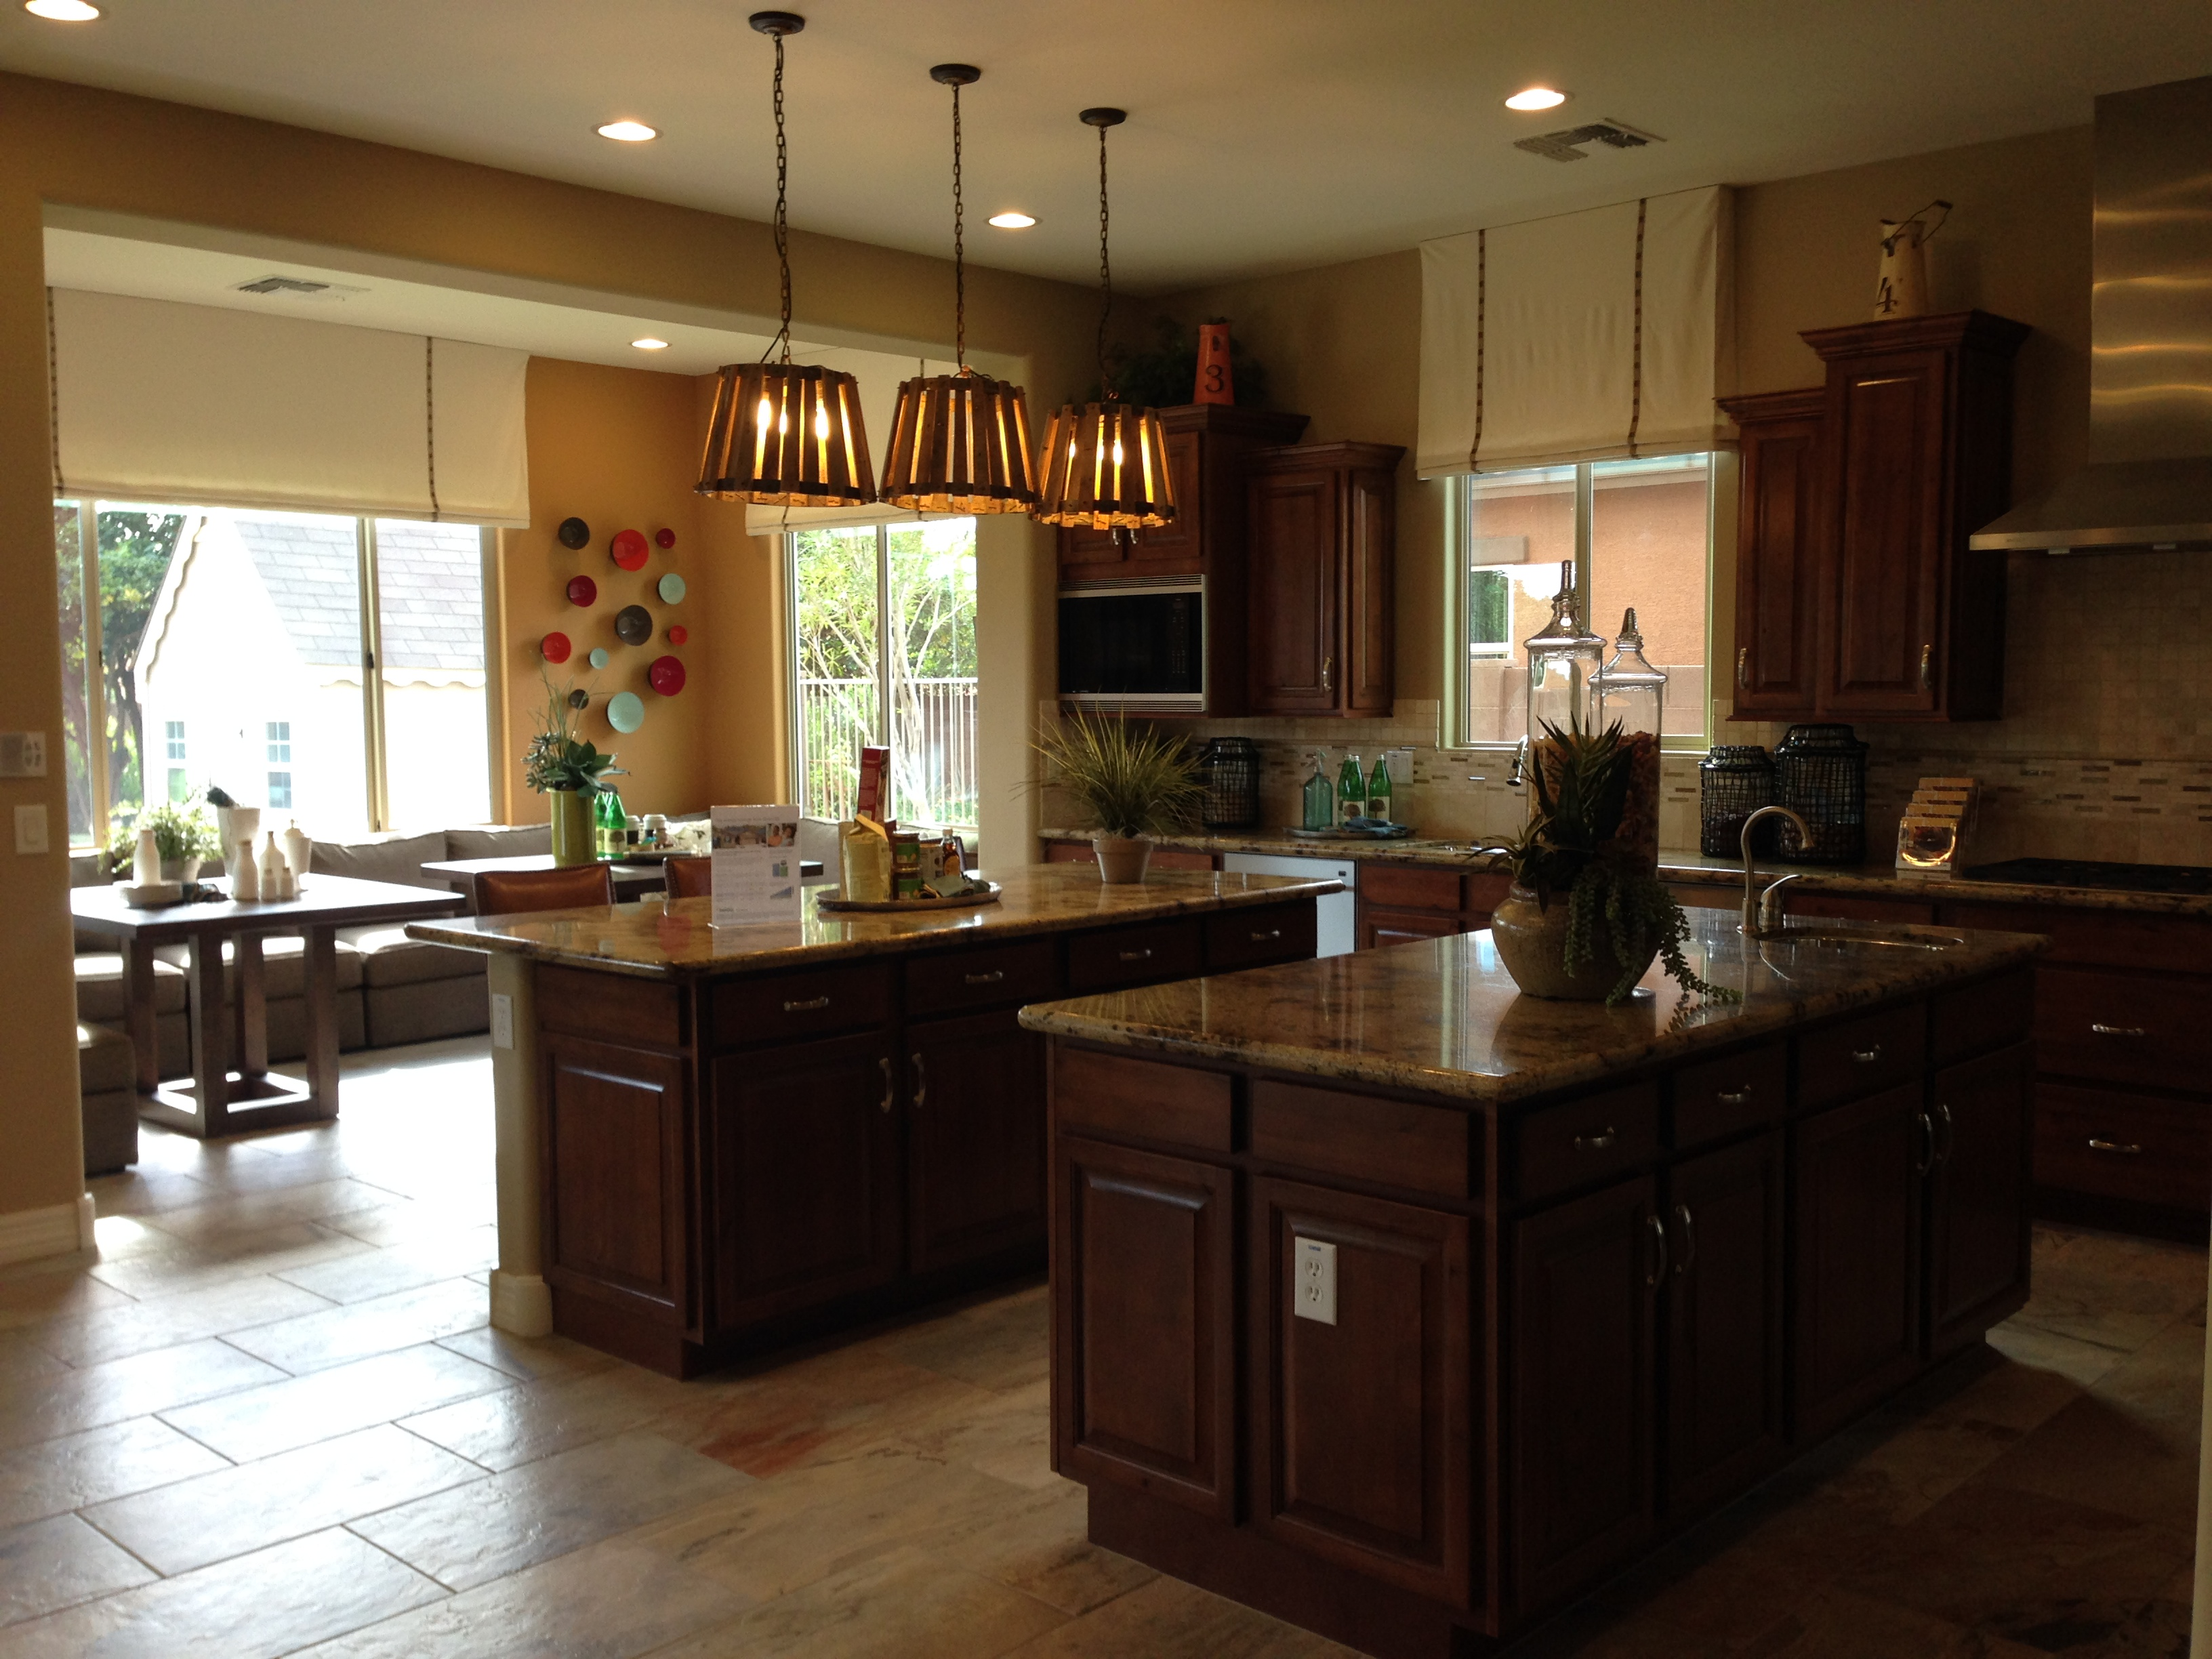 Exceptionnel Model Home Kitchen With Double Islands And Informal Eating Area